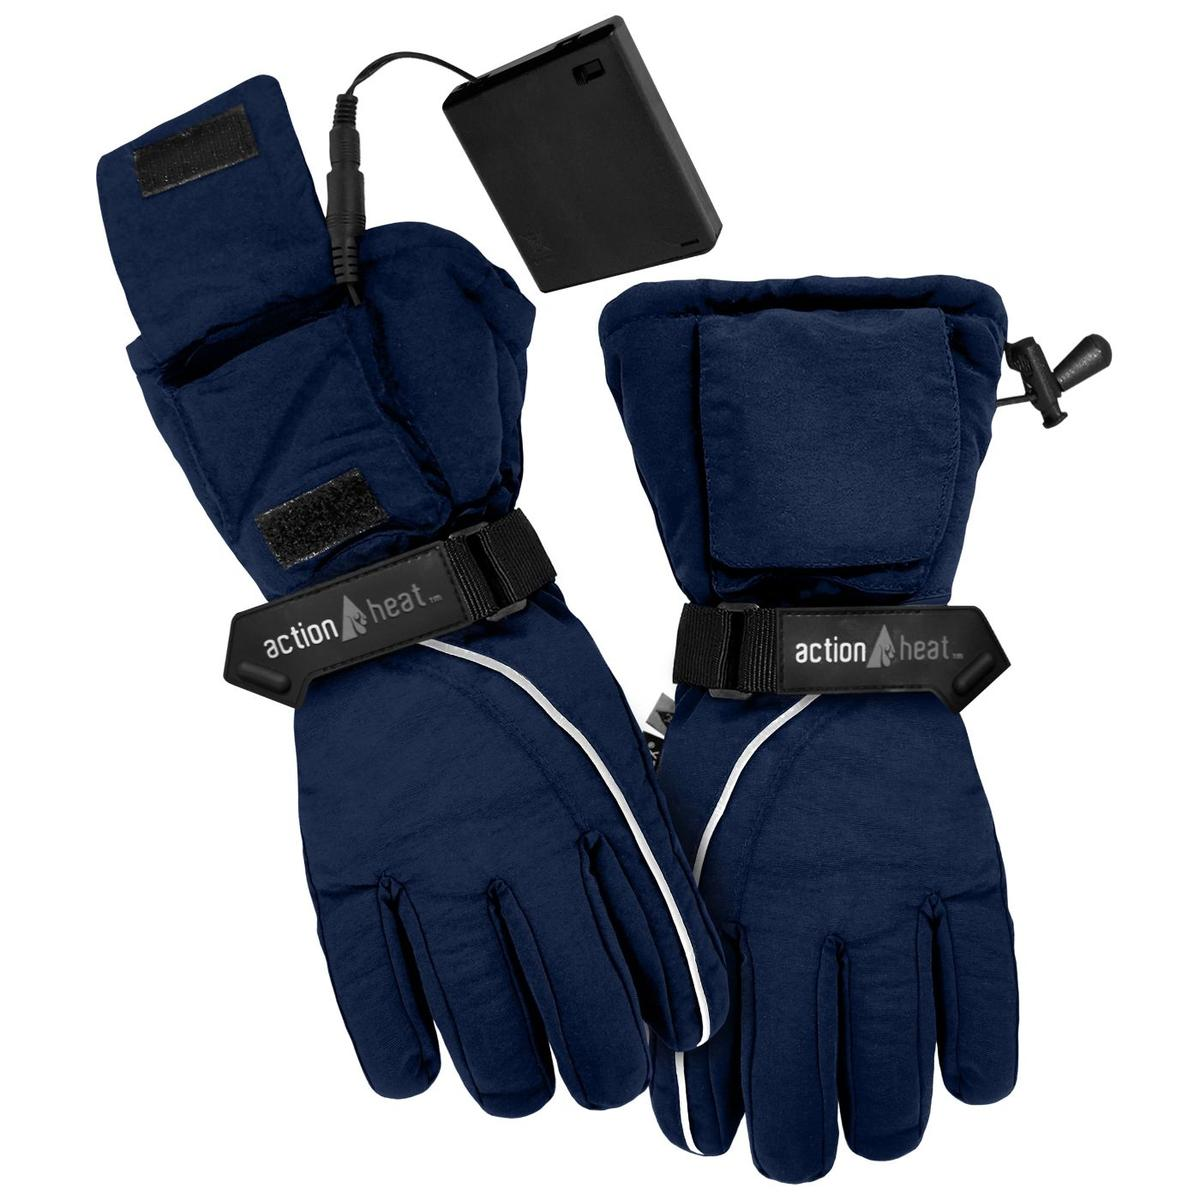 ActionHeat AA Battery Heated Gloves - Men's - Full Set